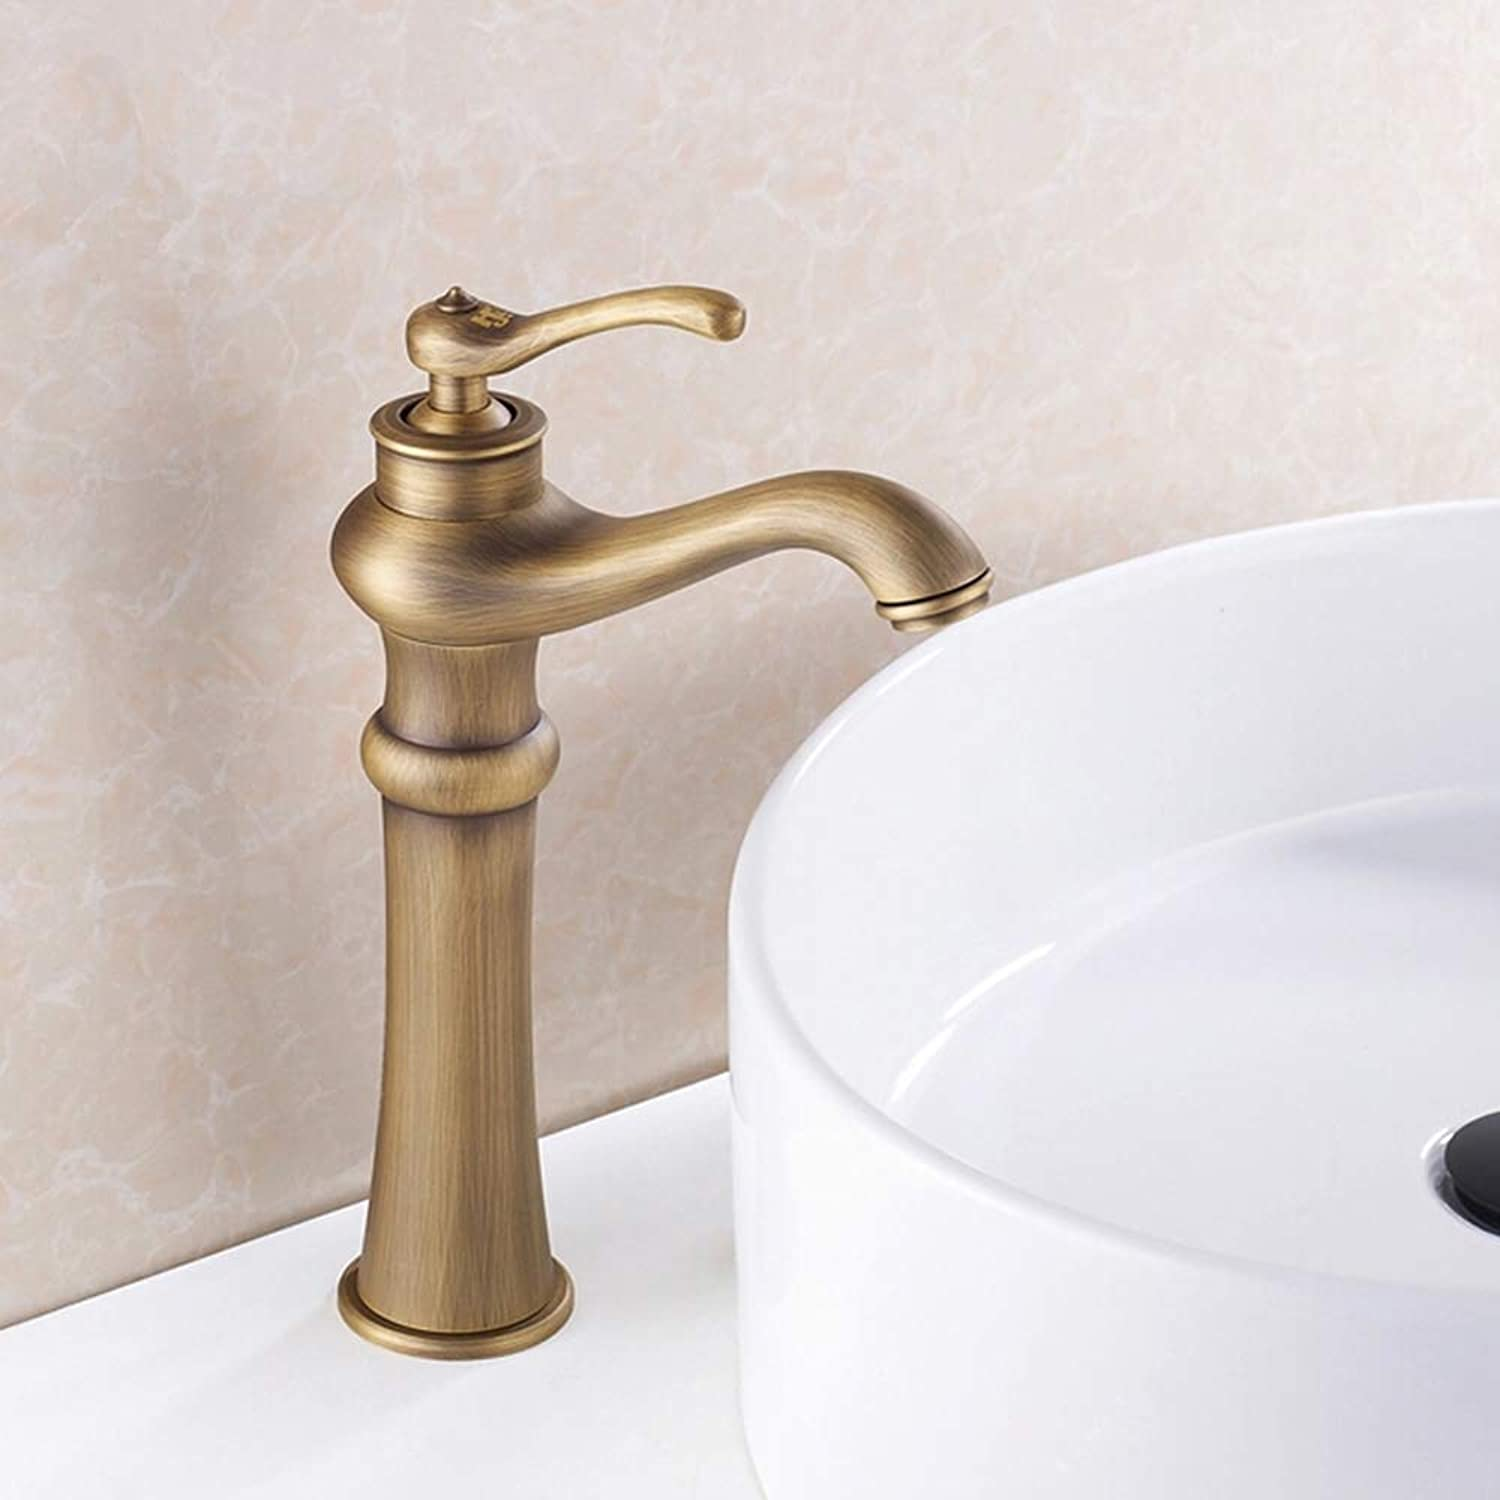 IFELGUD Decoration Bathroom Basin Sink Faucet with Brass Body and Bronze Brushed Surface Mixer Tap